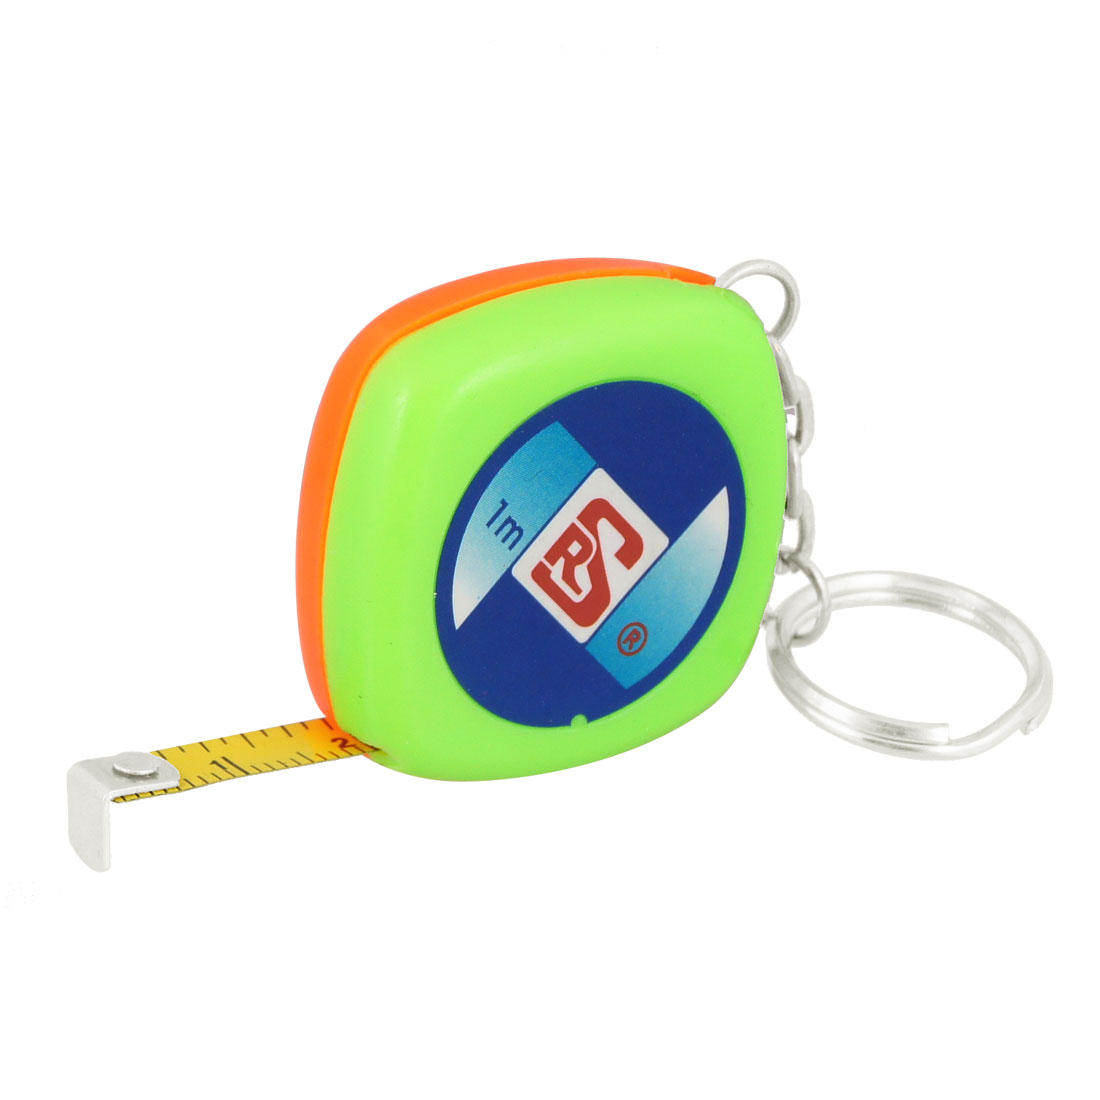 Green Shell English Metric Carpenter Ruler Tape Keychain 1M 3Ft